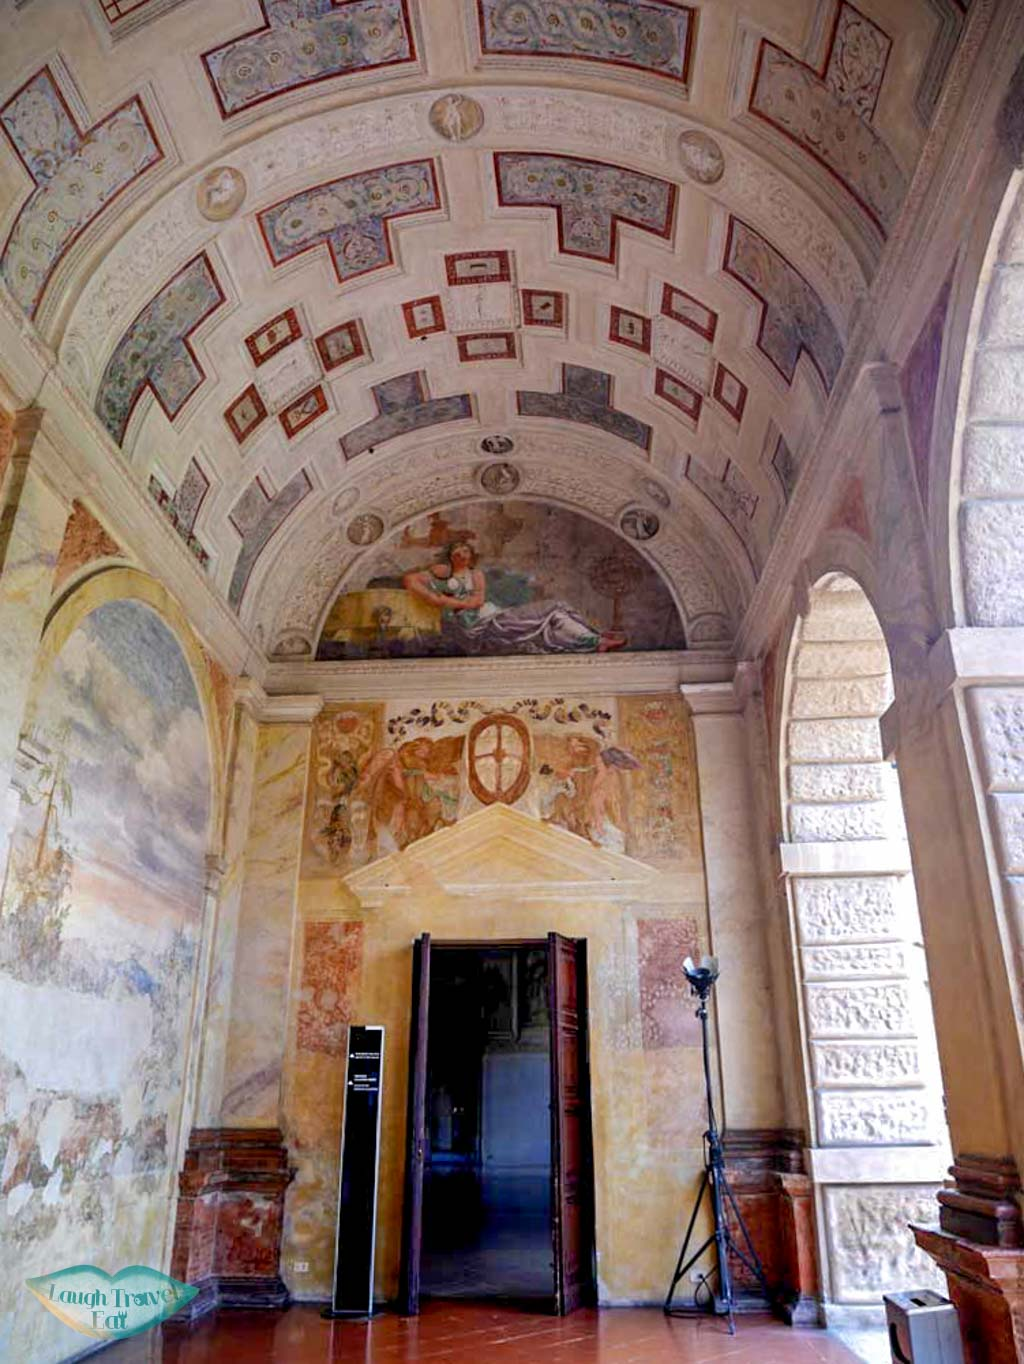 Loggia di Muses, Palazzo Te, Mantua, Italy | Laugh Travel Eat